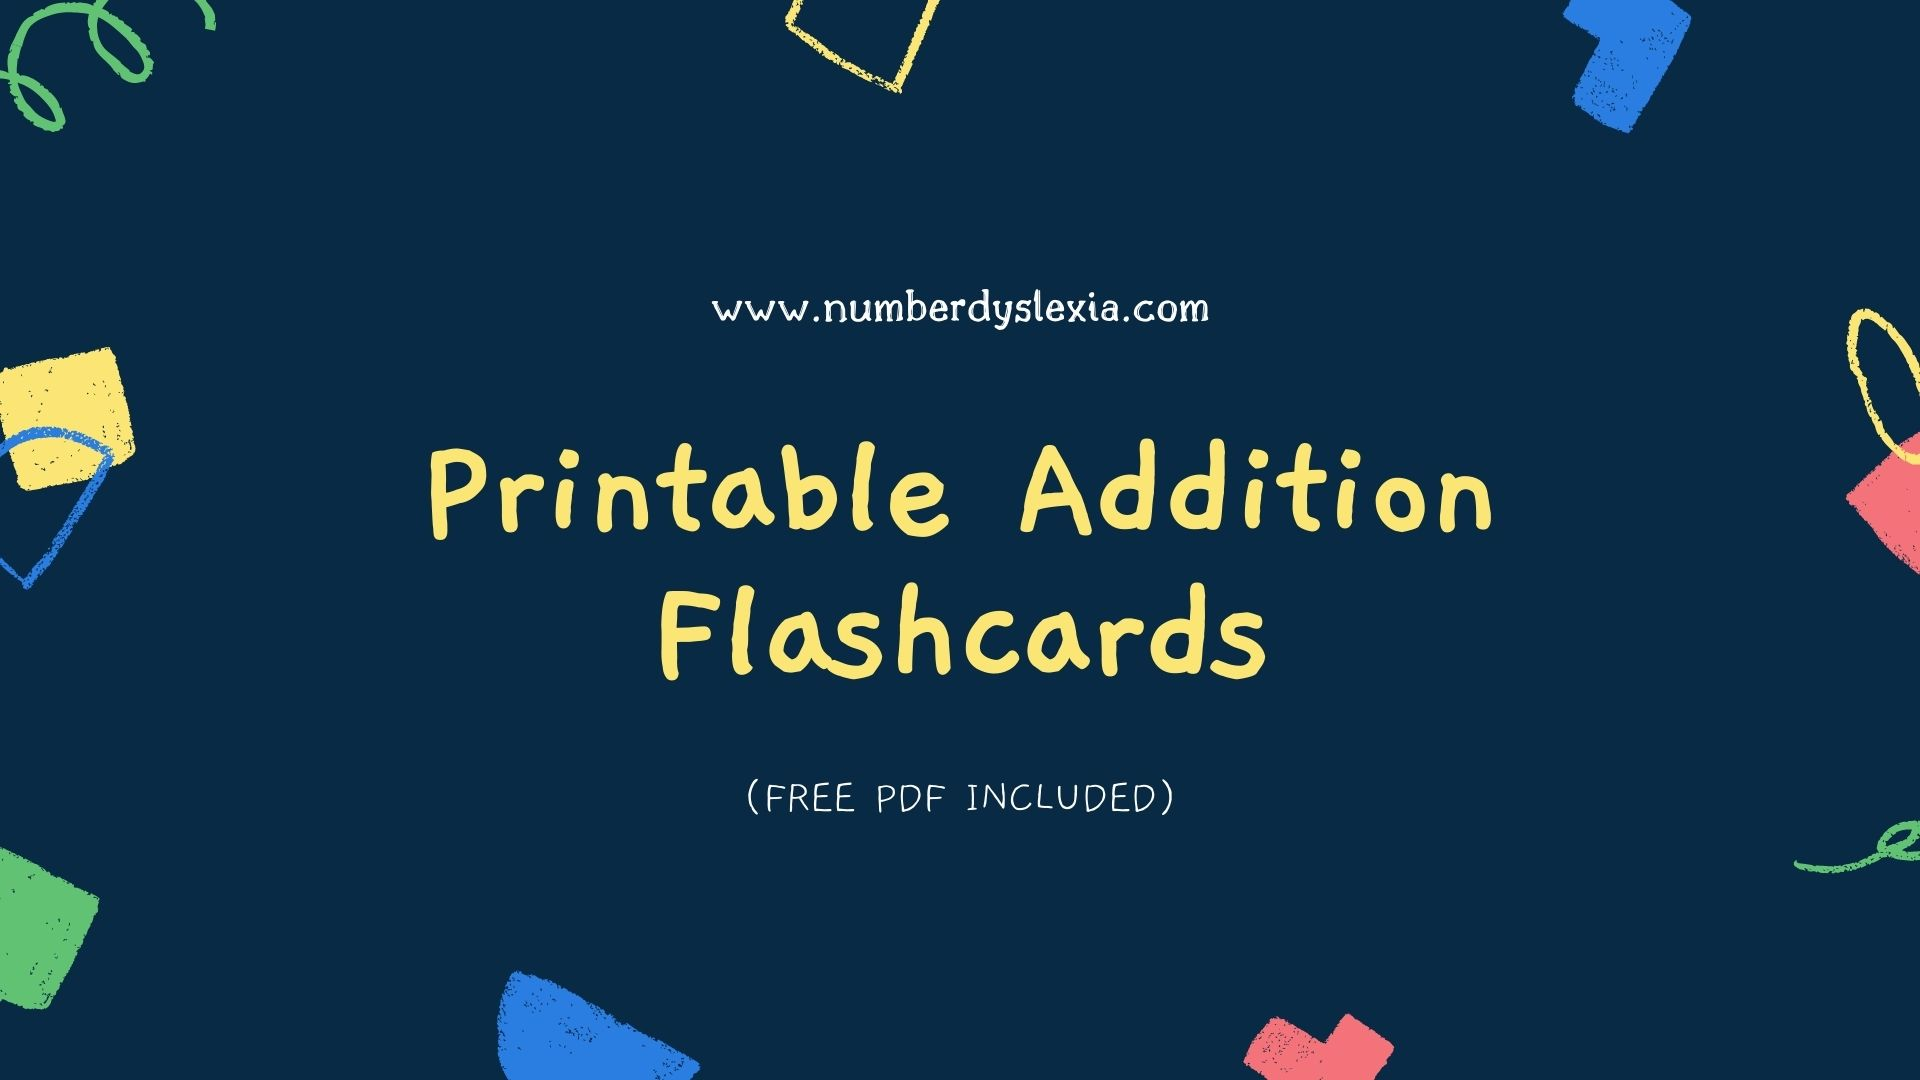 Printable Addition Flash Cards with Free PDF